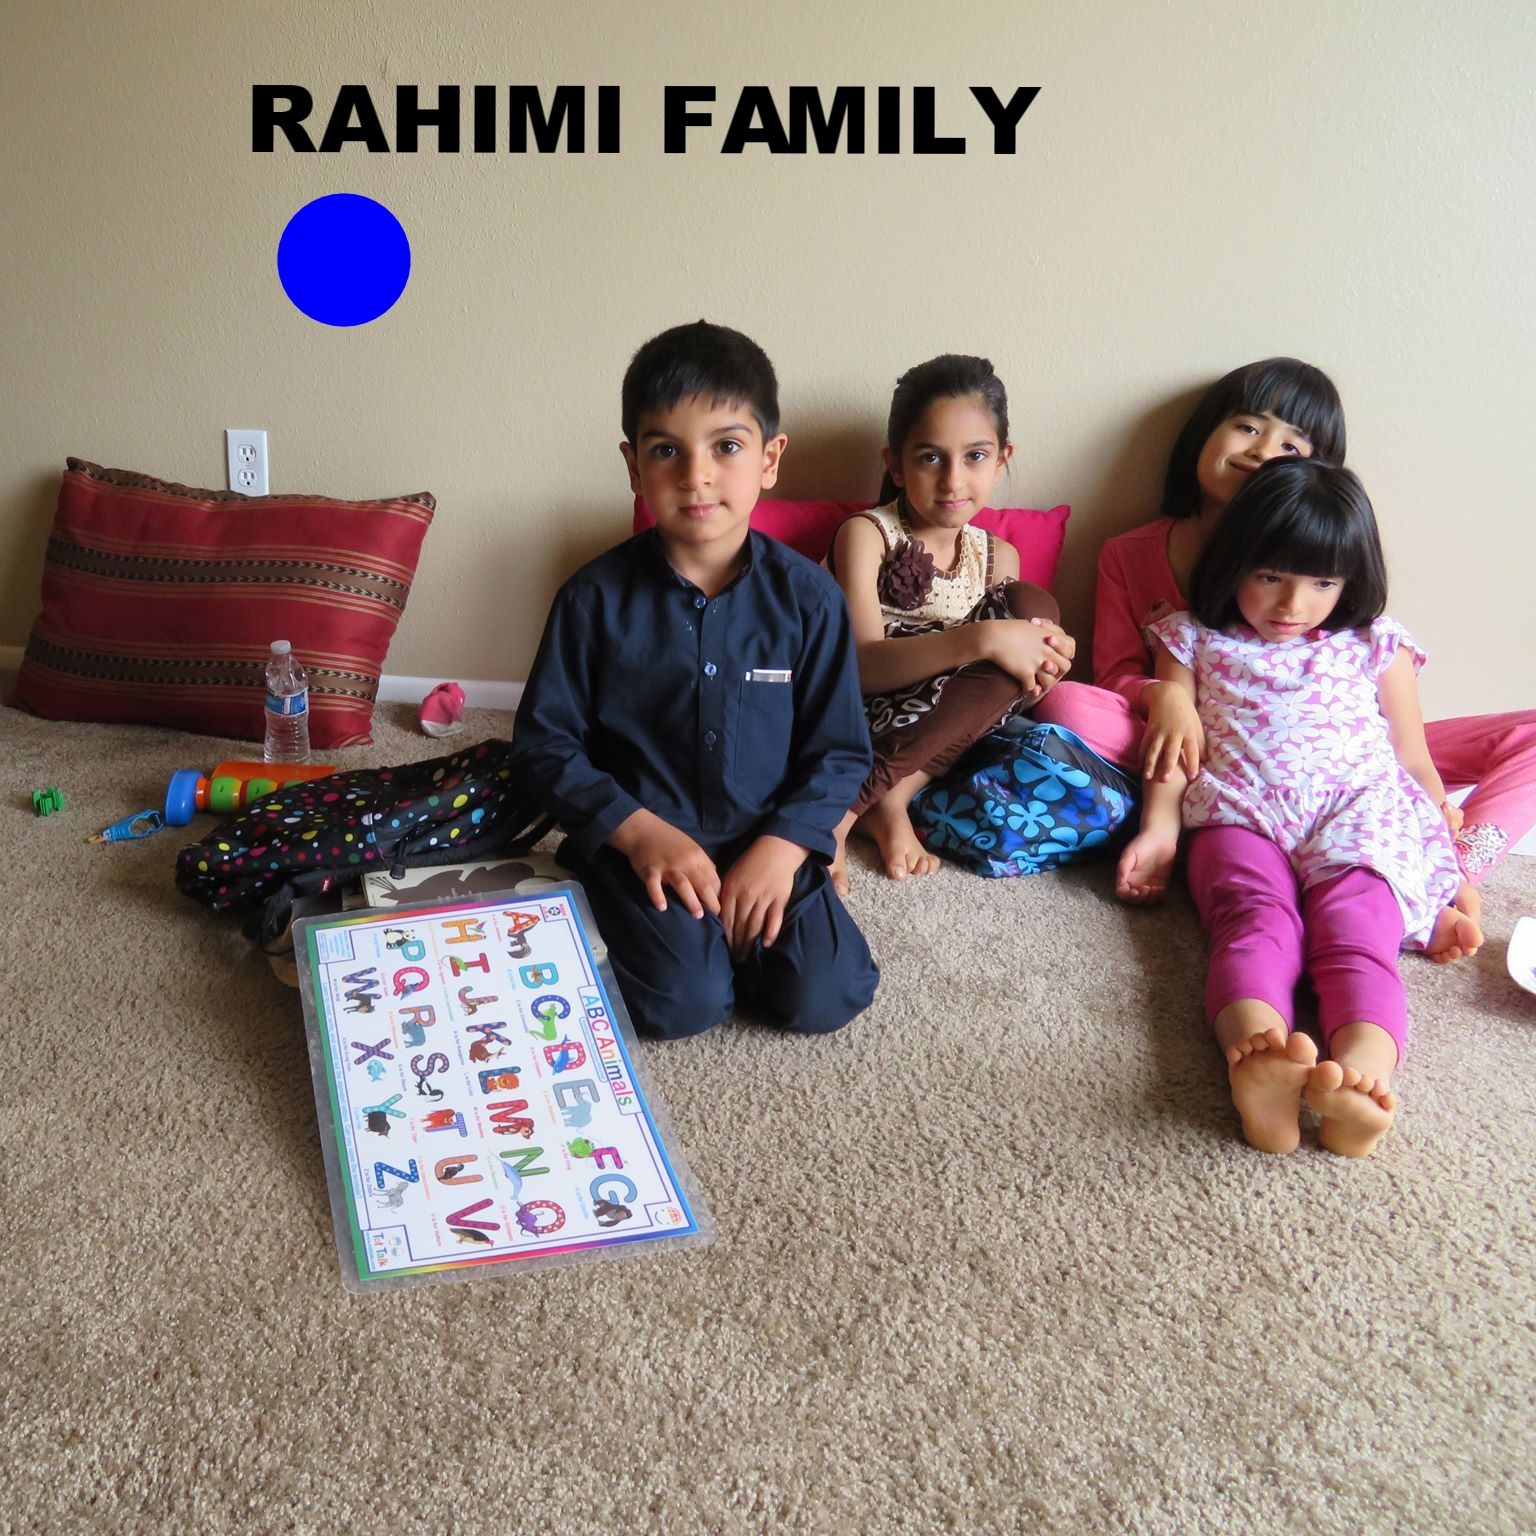 Afghan family of 5, arrived to LA on March 8 2017. Mom, Dad with three kids: 9 year old girl, 6 year old boy and baby boy, 13 months. Dad worked with the American military in Afghanistan. Now they are resettling in  Southern CA.